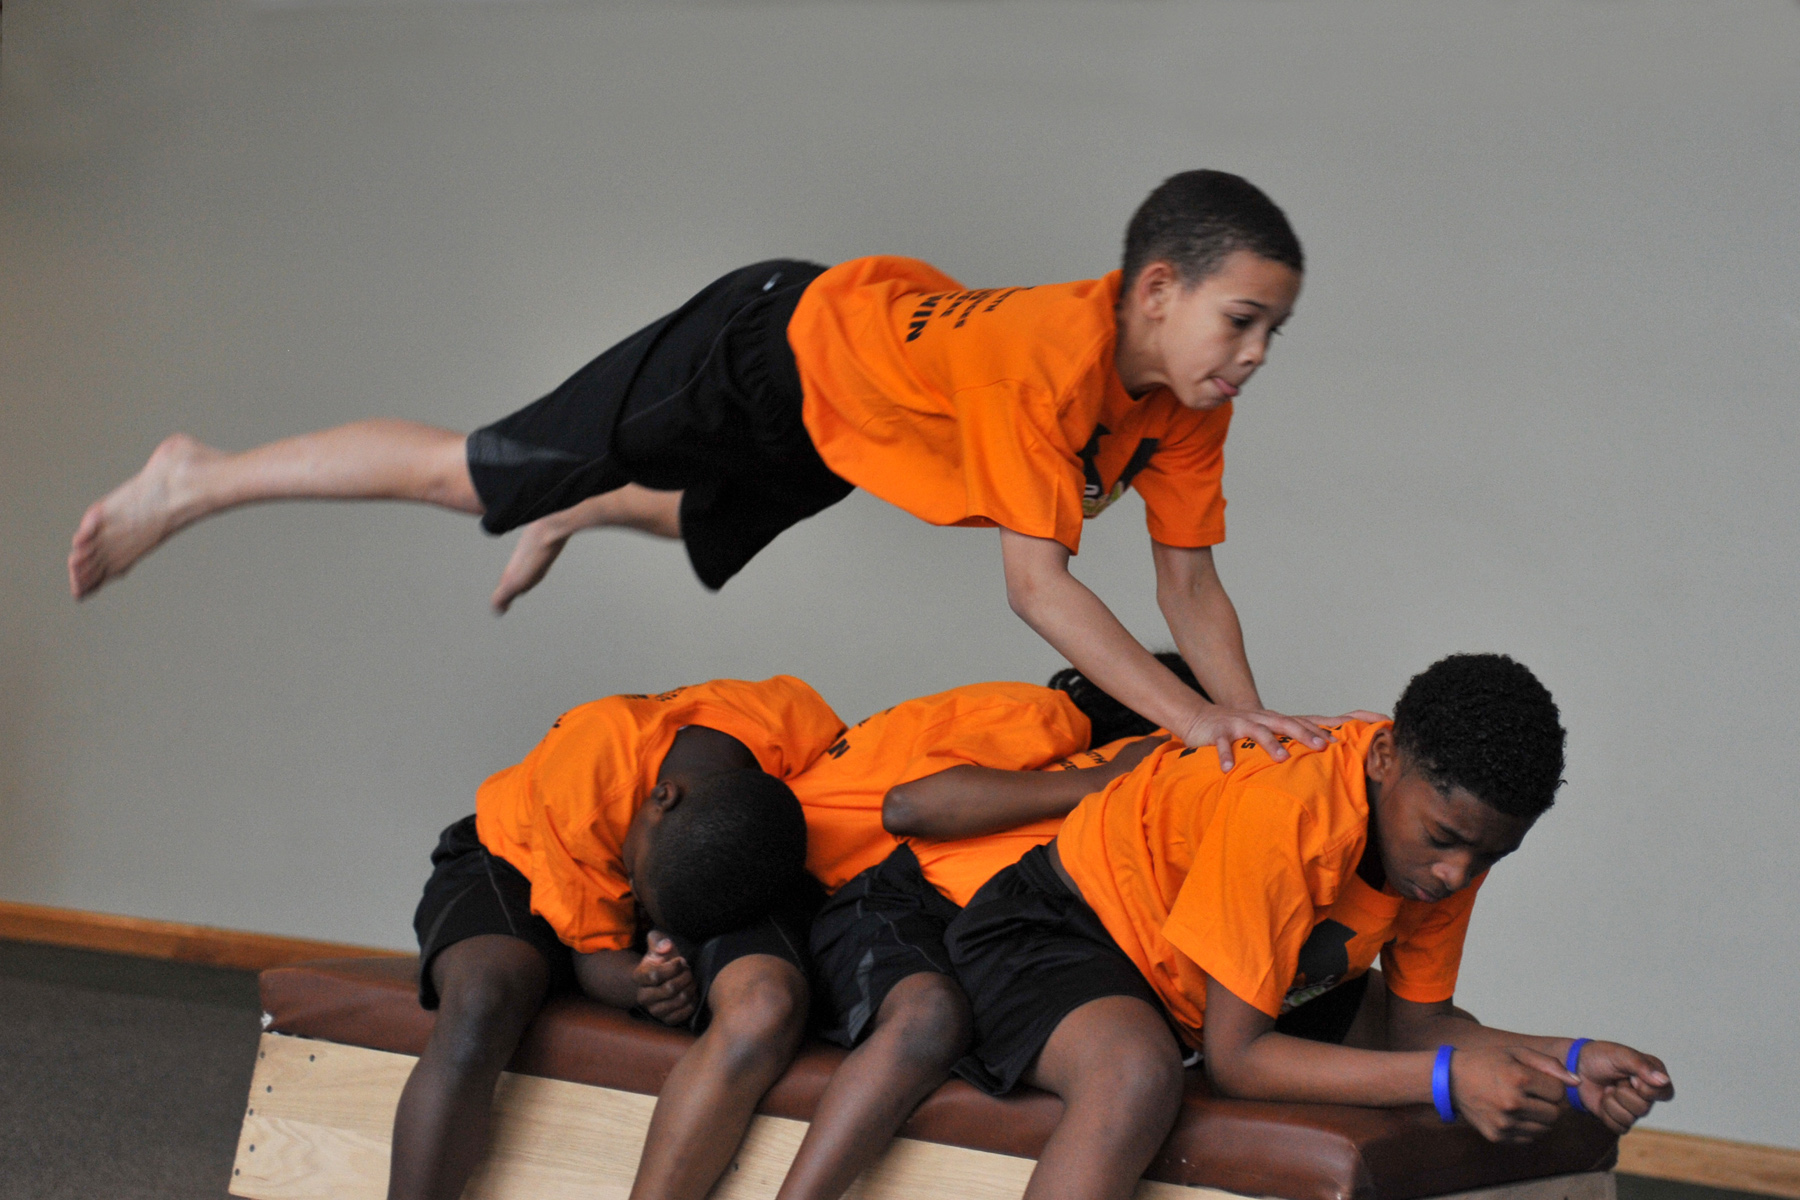 Leaping over each other, juggling and balancing on a unicycle are all part of these acrobats' routine. As they propel into the air from the trampoline, these students have come to understand direction and persistence through the arts.